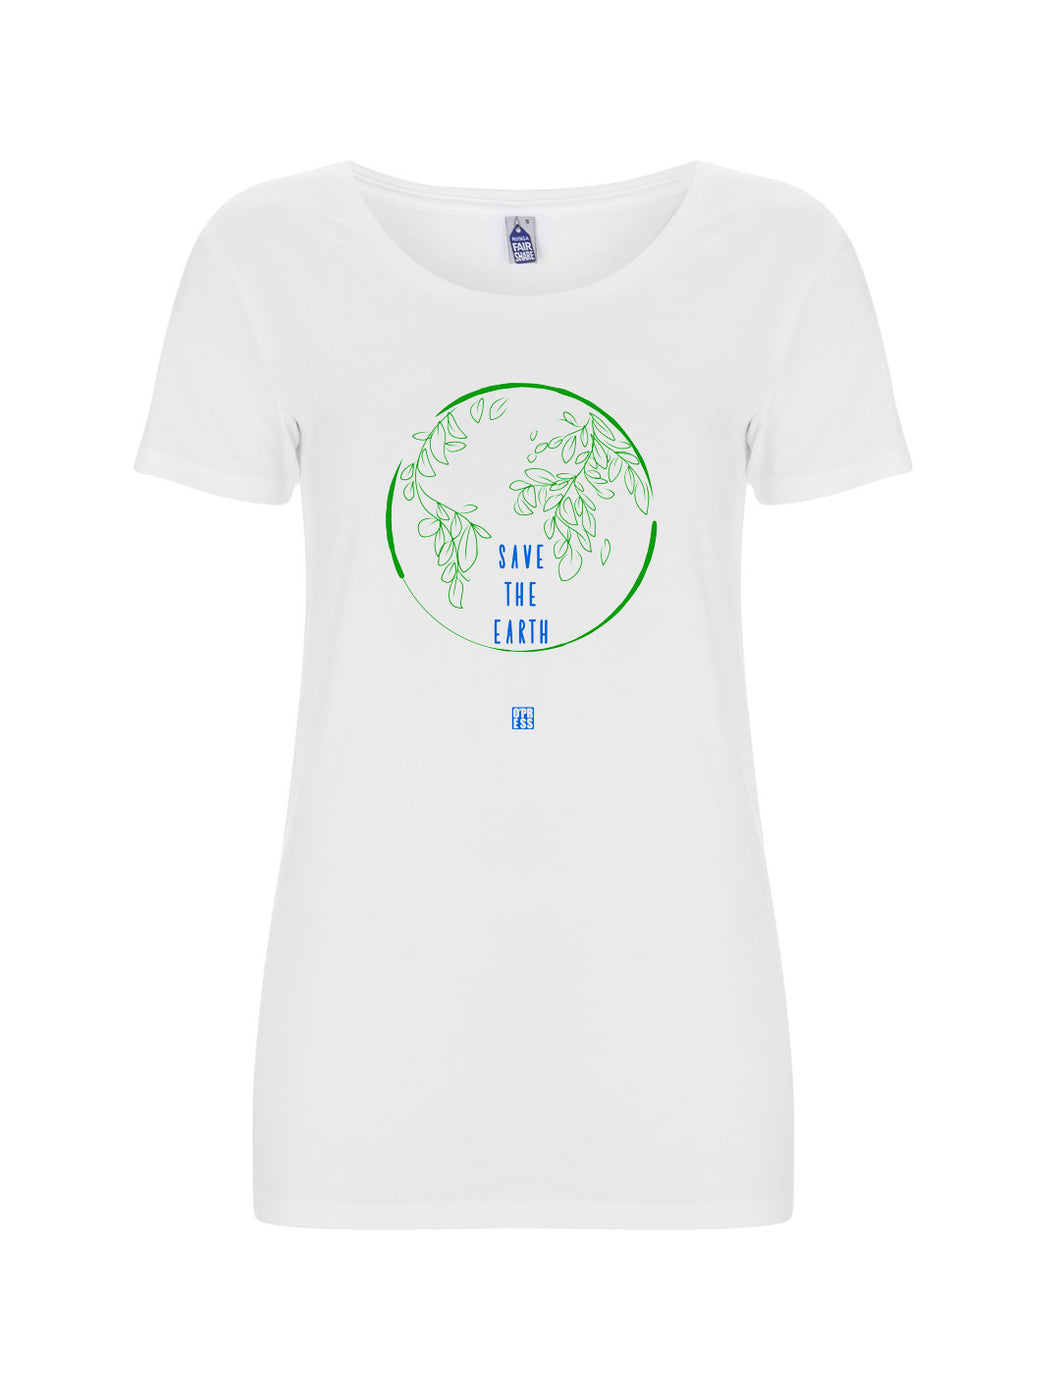 t-shirt donna - SAVE THE EARTH / BIANCA - linea Extra track